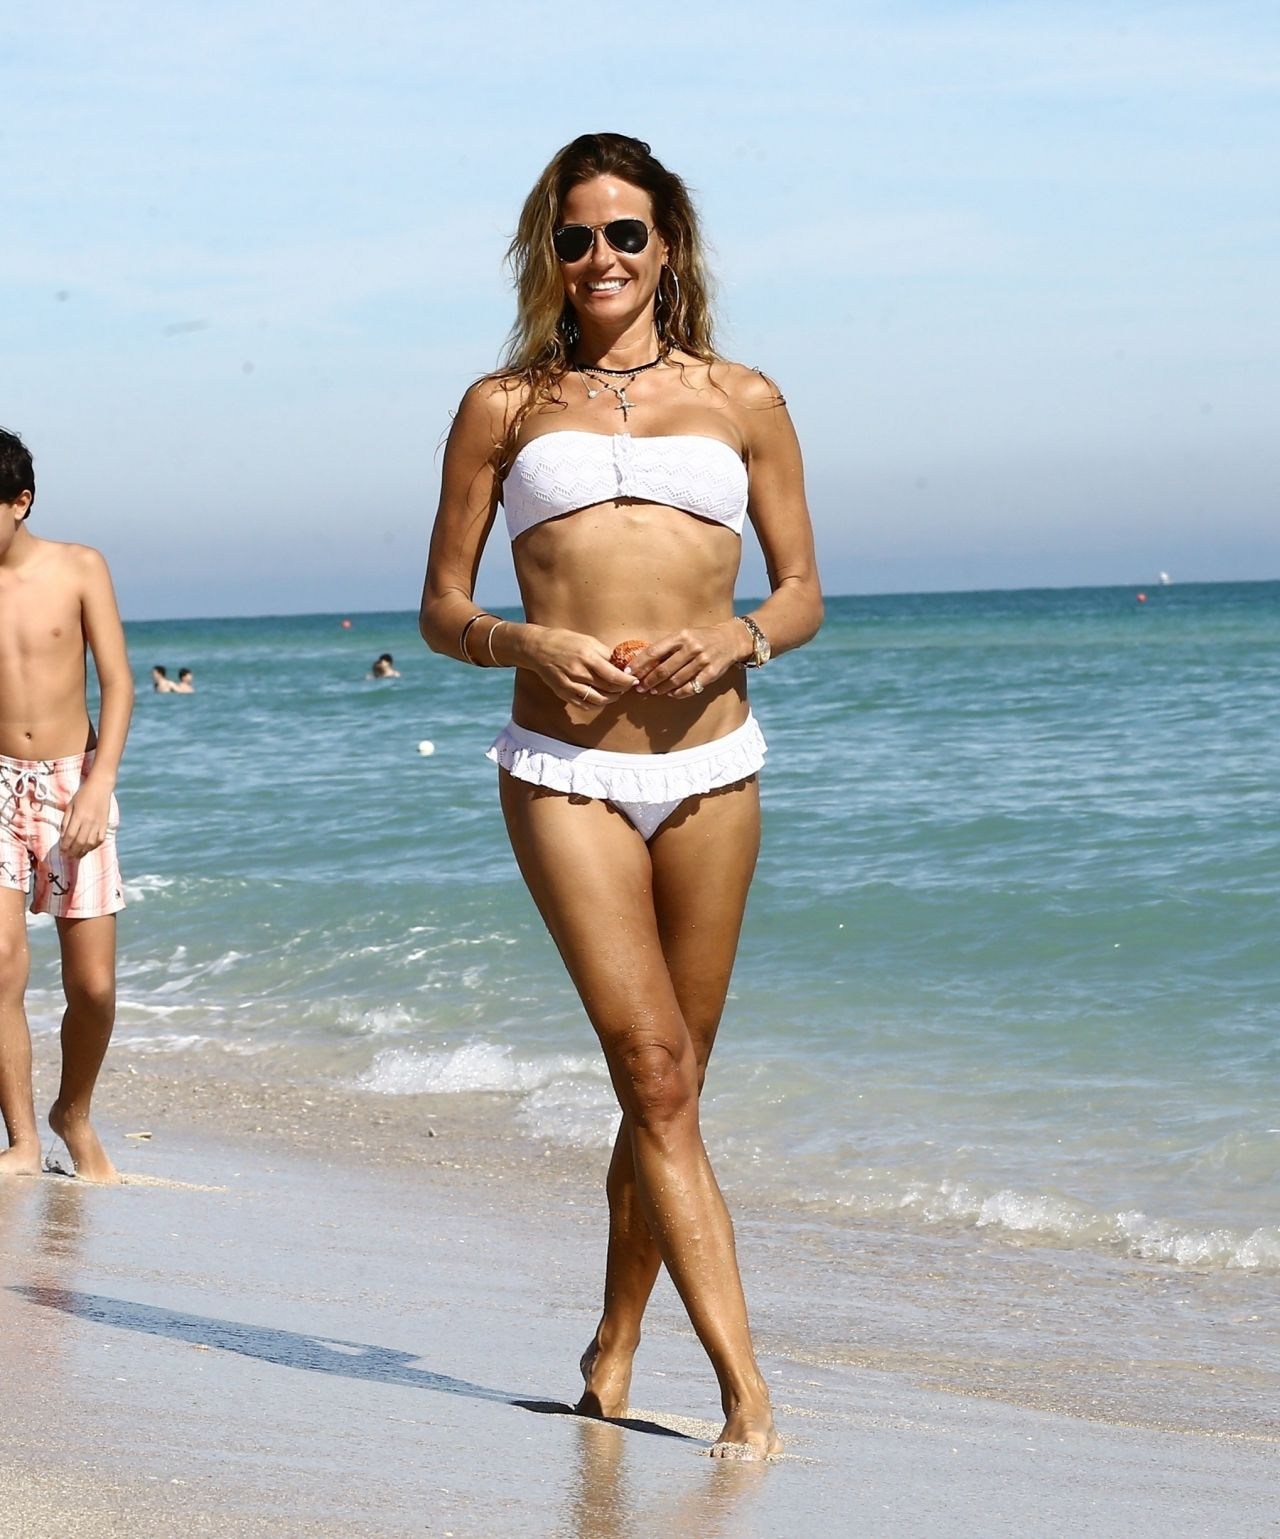 Kelly Bensimon in White Bikini in Miami Pic 21 of 35